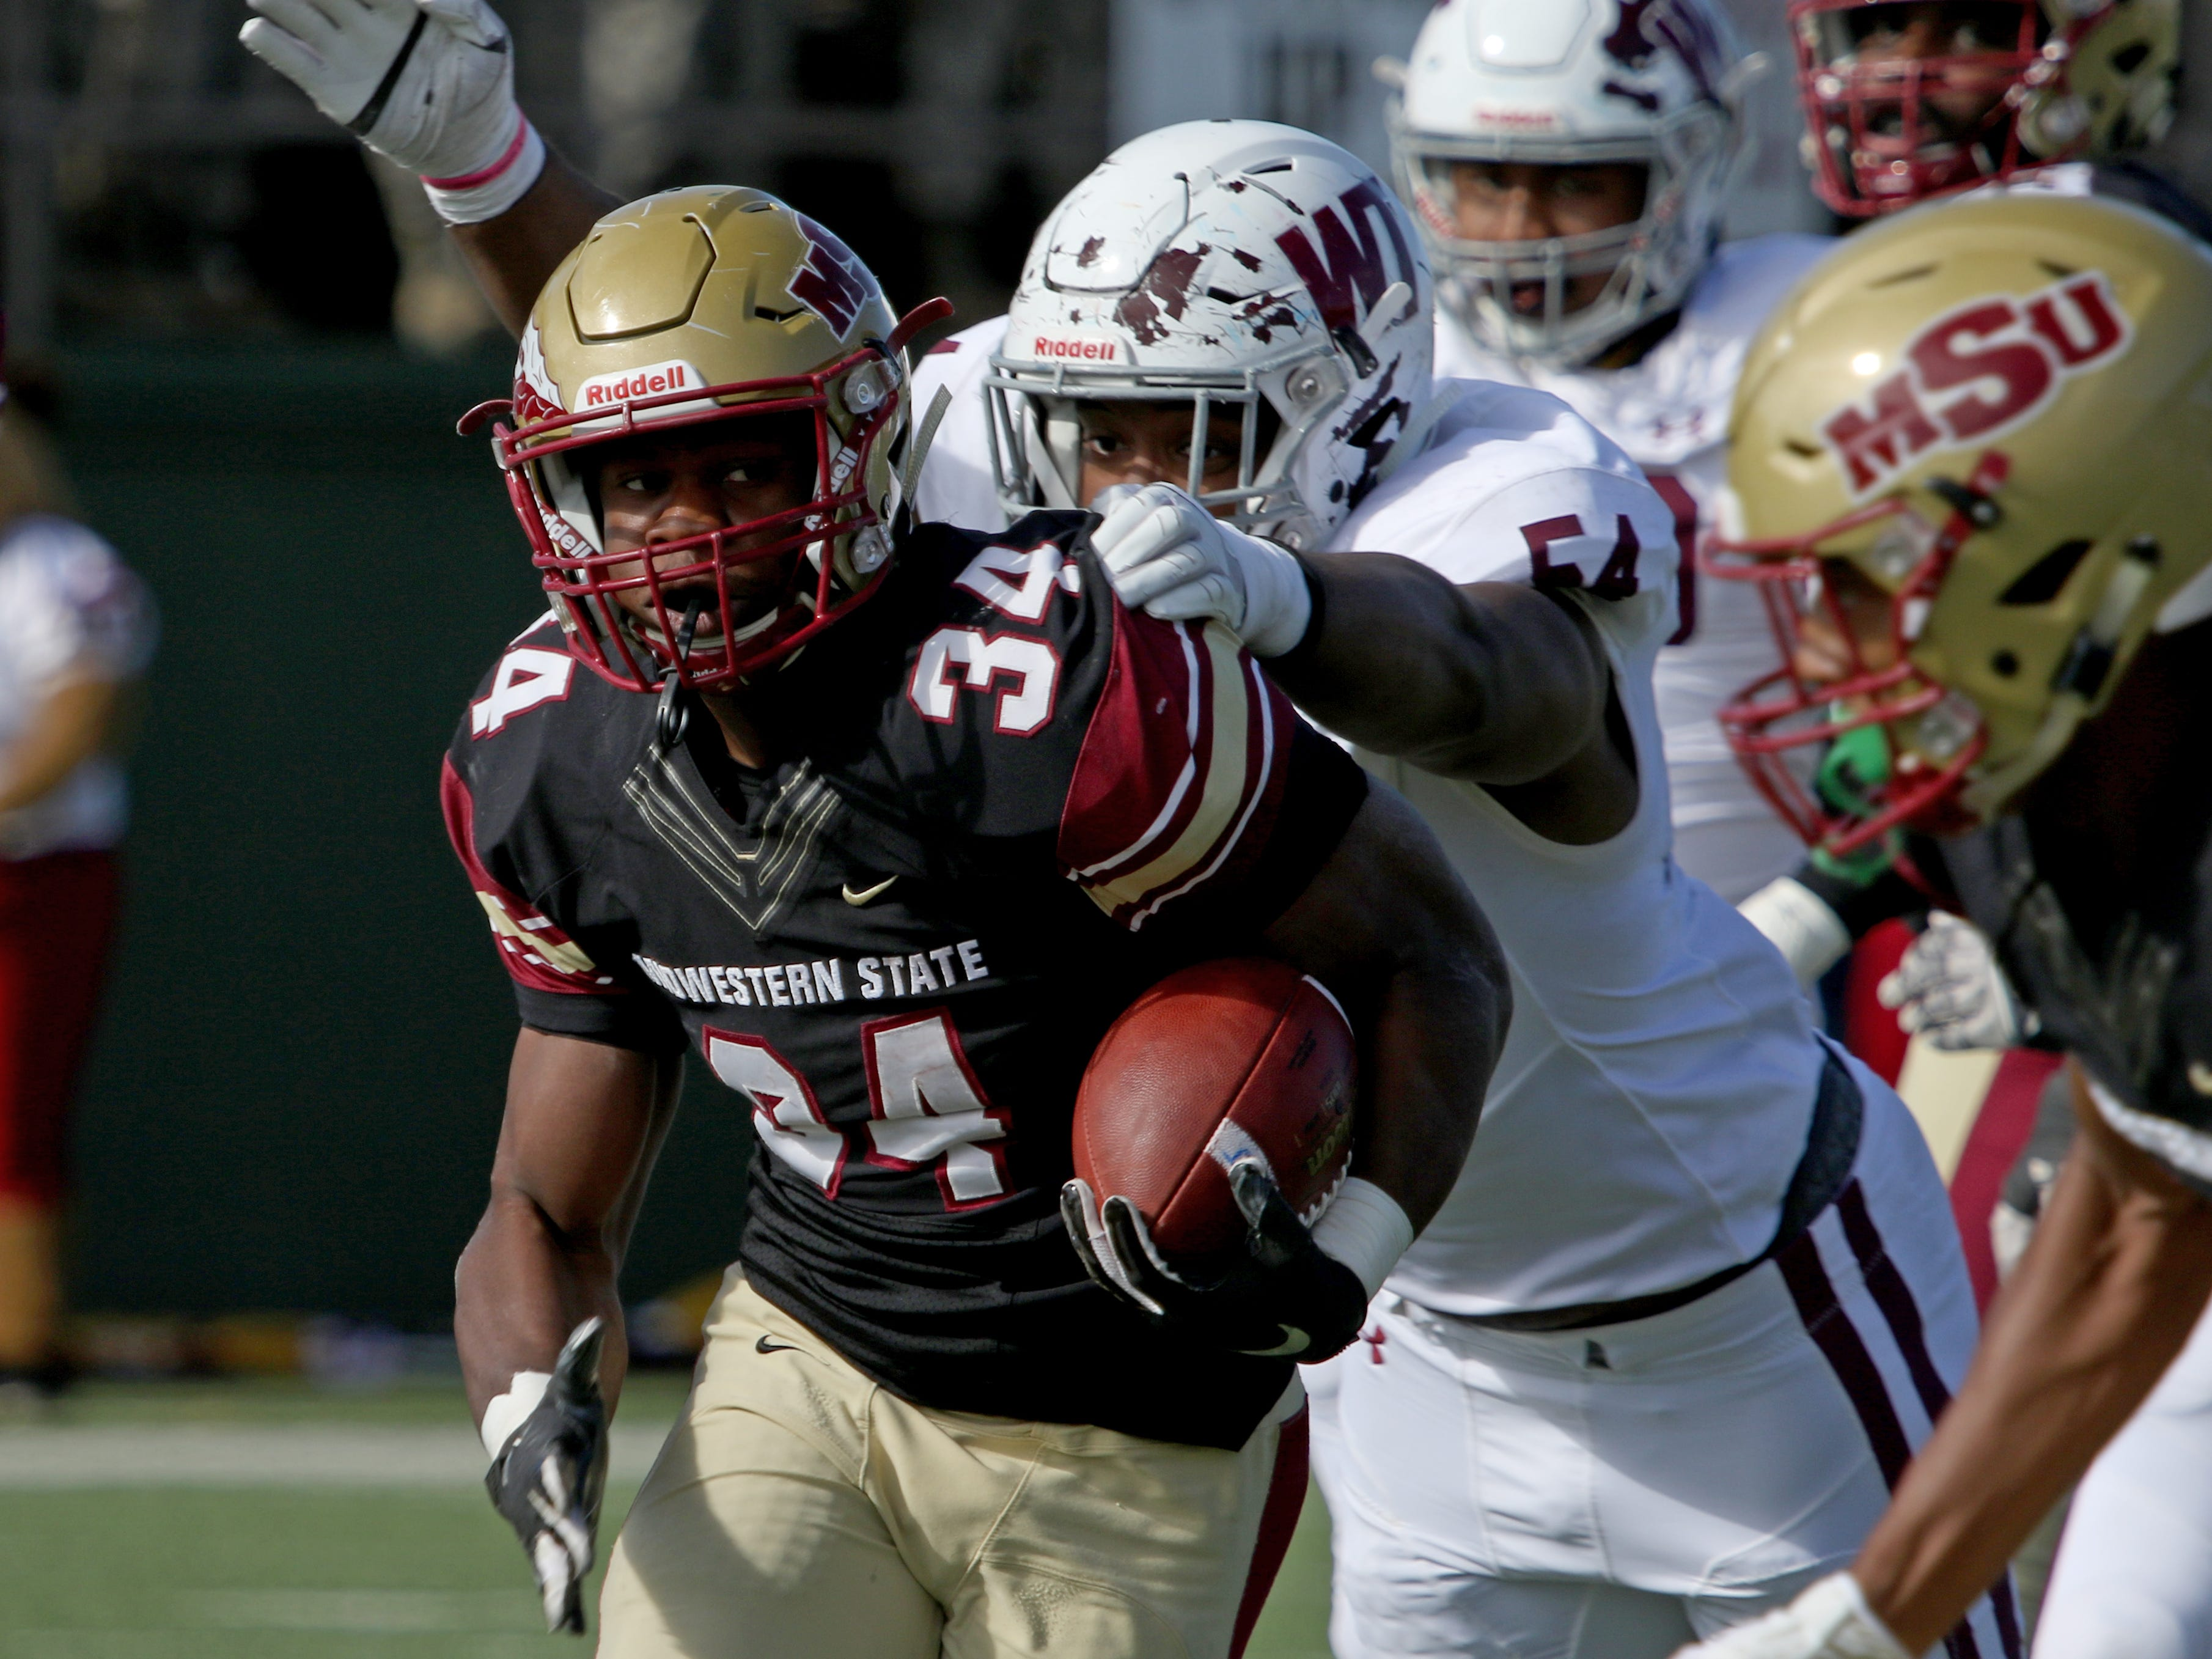 Midwestern State's Vincent Johnson runs for a large gain against West Texas A&M Saturday, Nov. 10, 2018, at Memorial Stadium. The Mustangs defeated Buffs 24-23 in overtime.